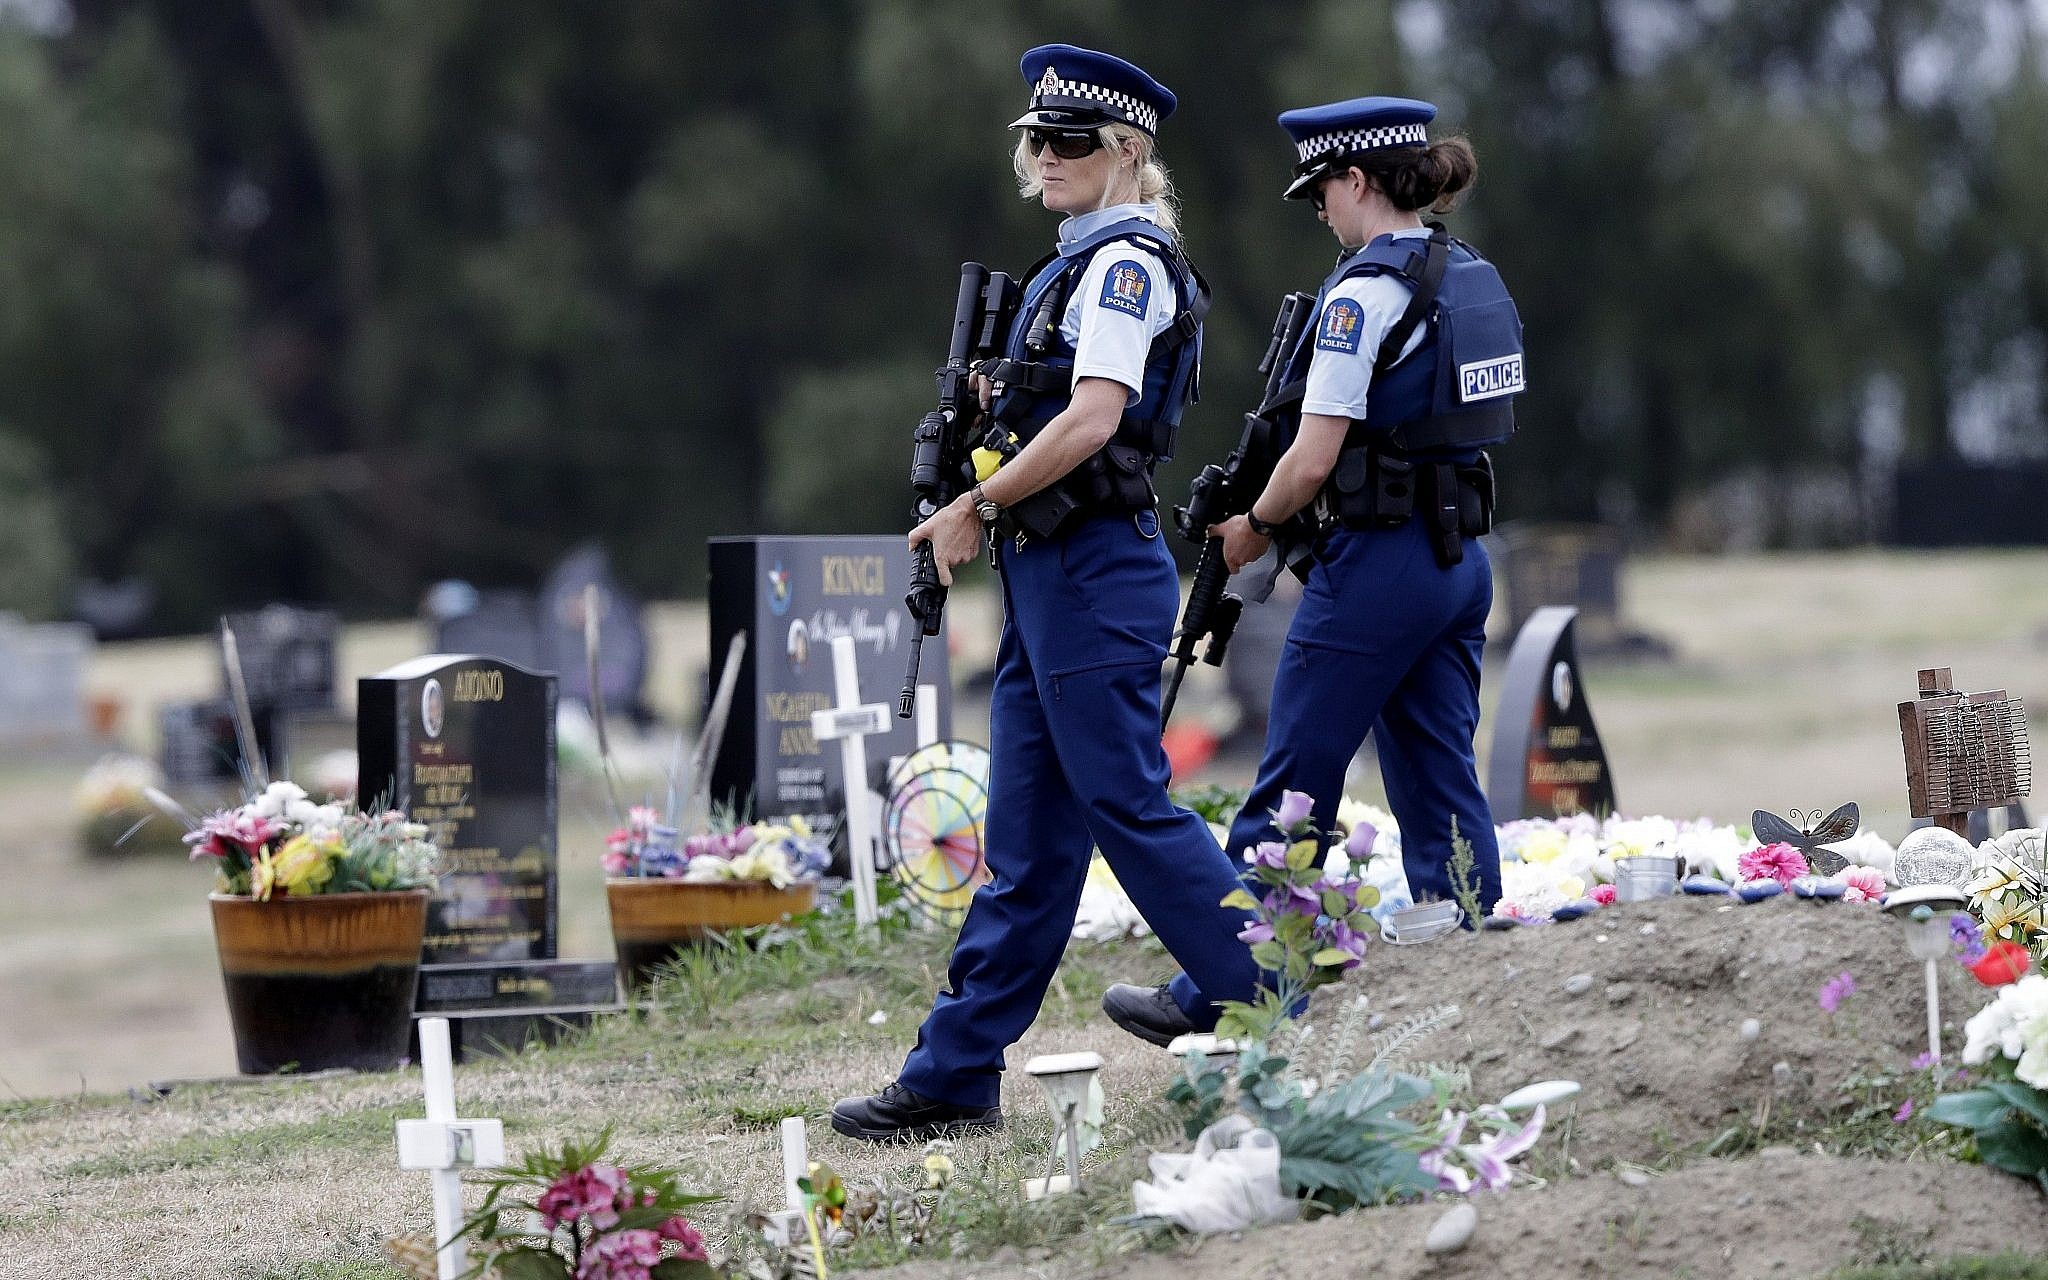 New Zealand cabinet agrees to change gun laws after Christchurch attacks